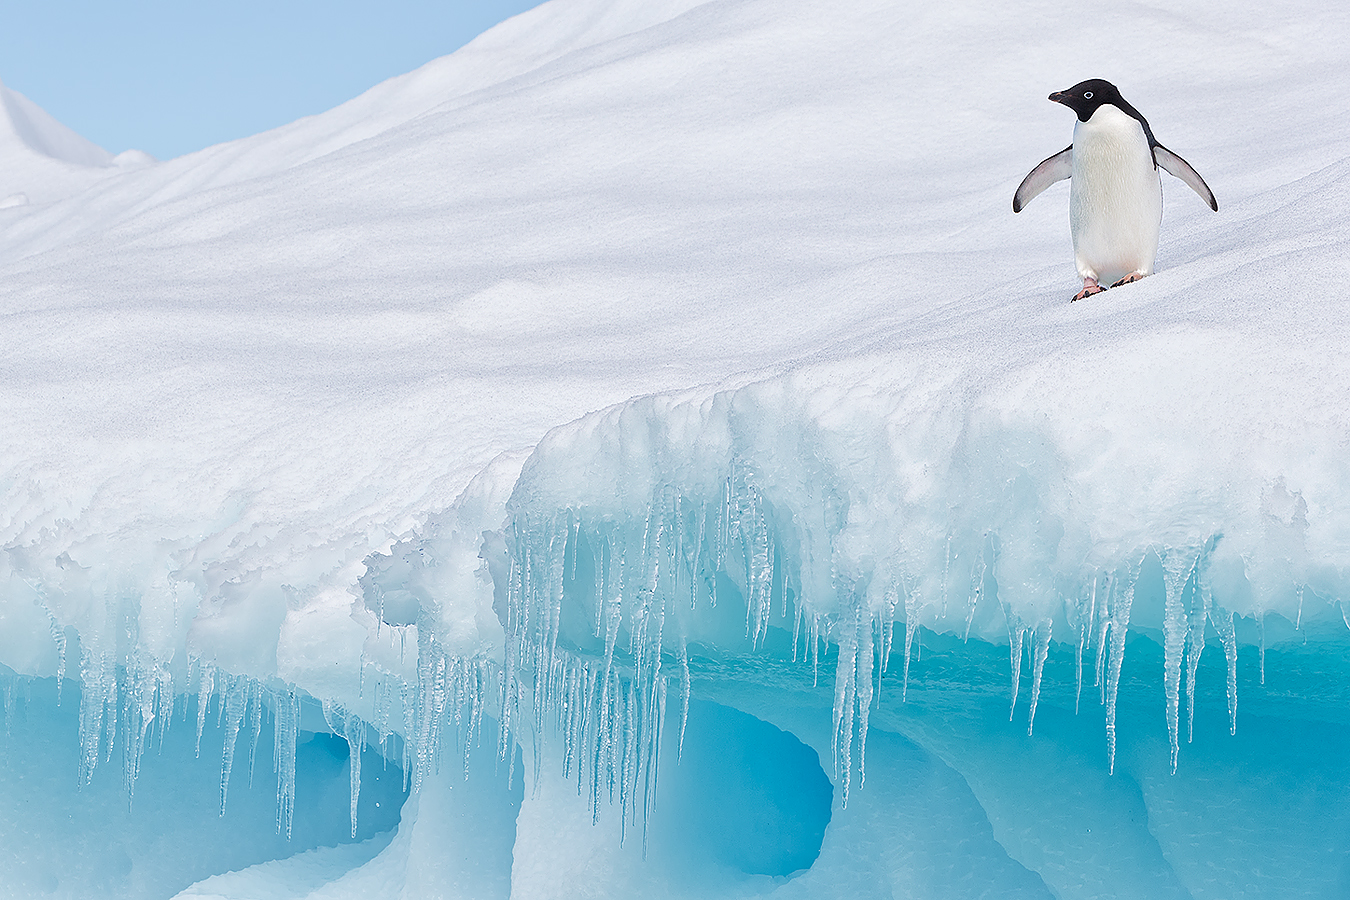 small_clemens-vanderwerf-adelie-penguin-on-iceberg-with-icecles_e7t1693-detaille-lsland-antarctica